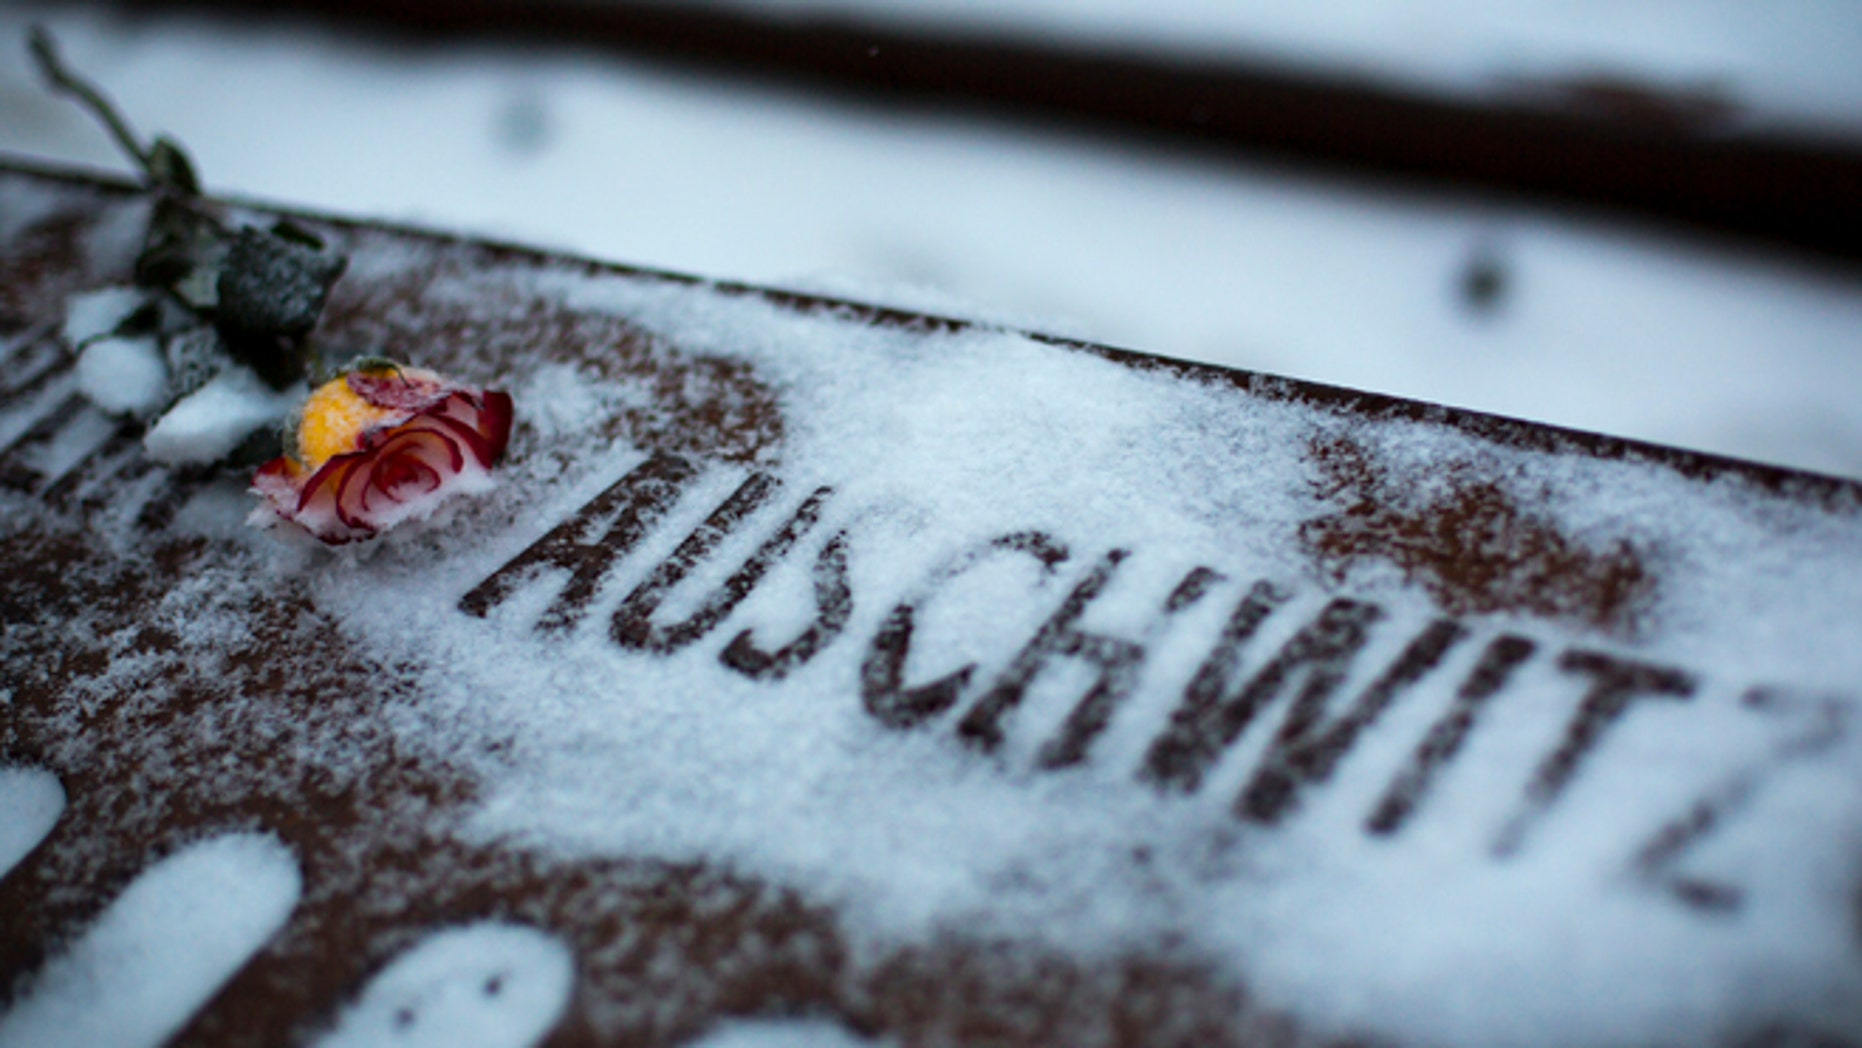 Jan. 25, 2014: A flower lies next to the word Auschwitz, denoting the name of the Nazi concentration camp, at the Gleis 17 (platform 17) memorial commemorating Jews who were deported from Grunewald train station during World War II in Berlin.